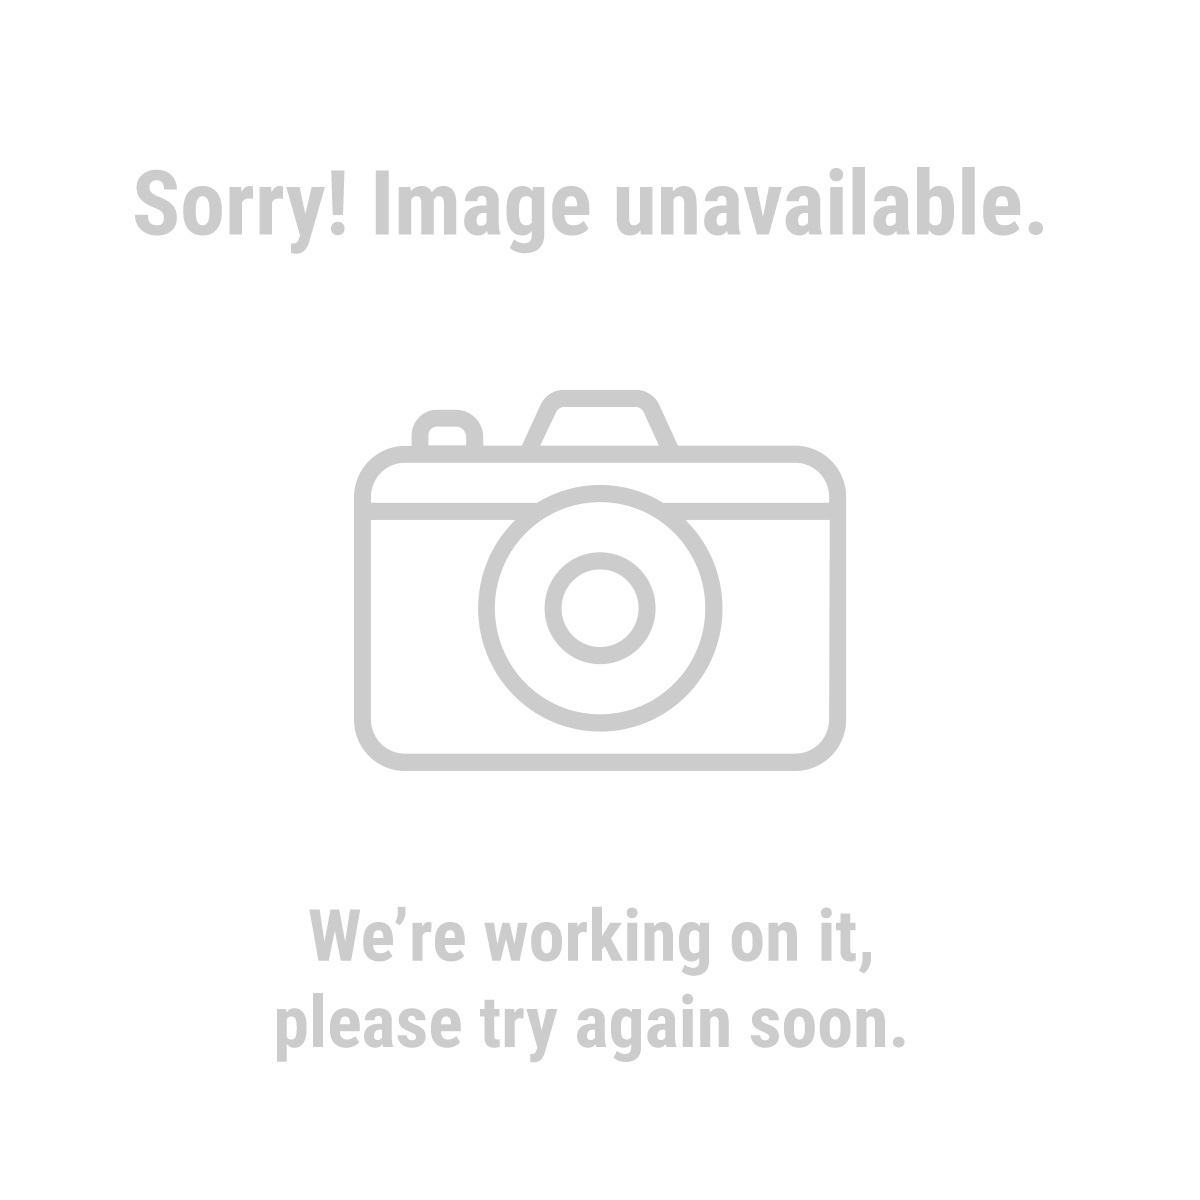 Pittsburgh Automotive 40749 Pulley Remover and Installer Set